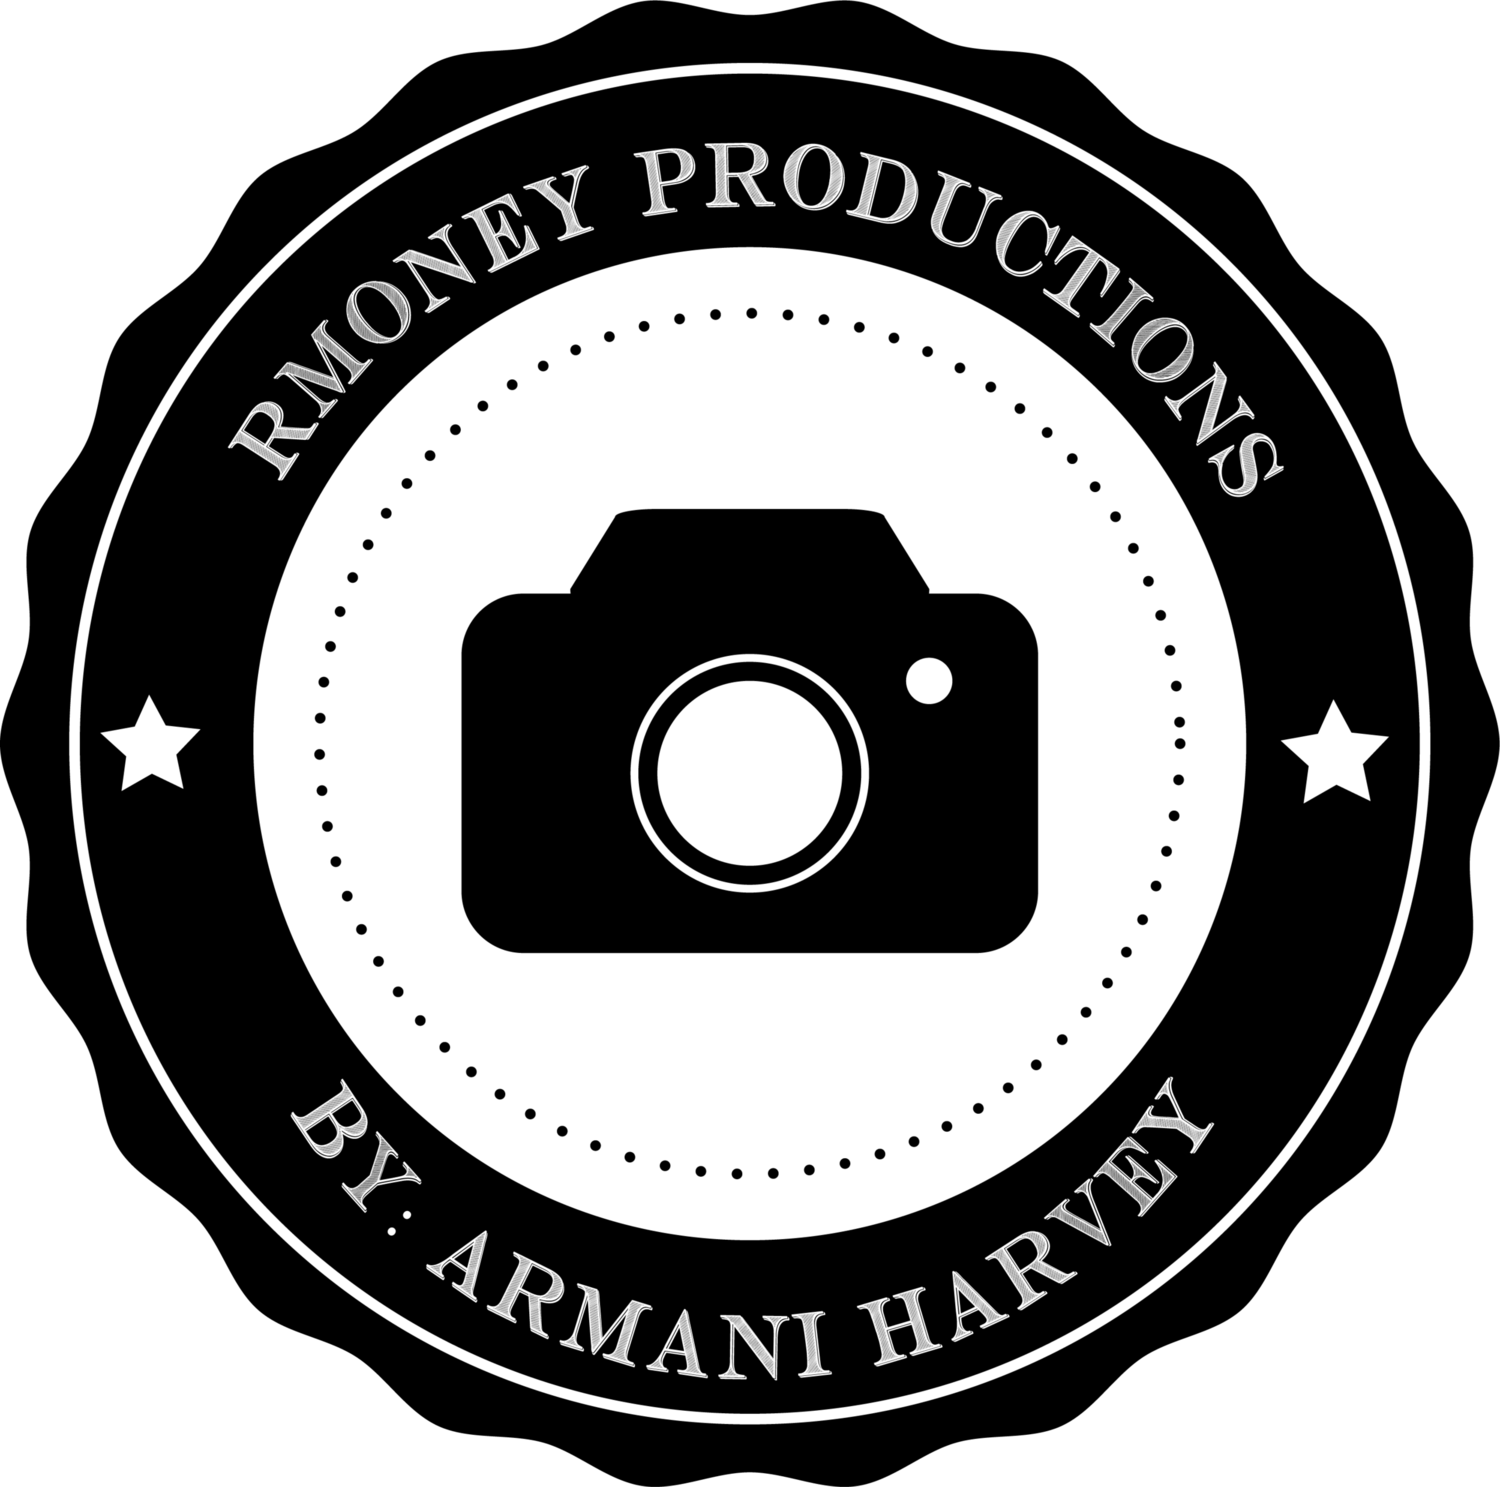 RmoneyProductions